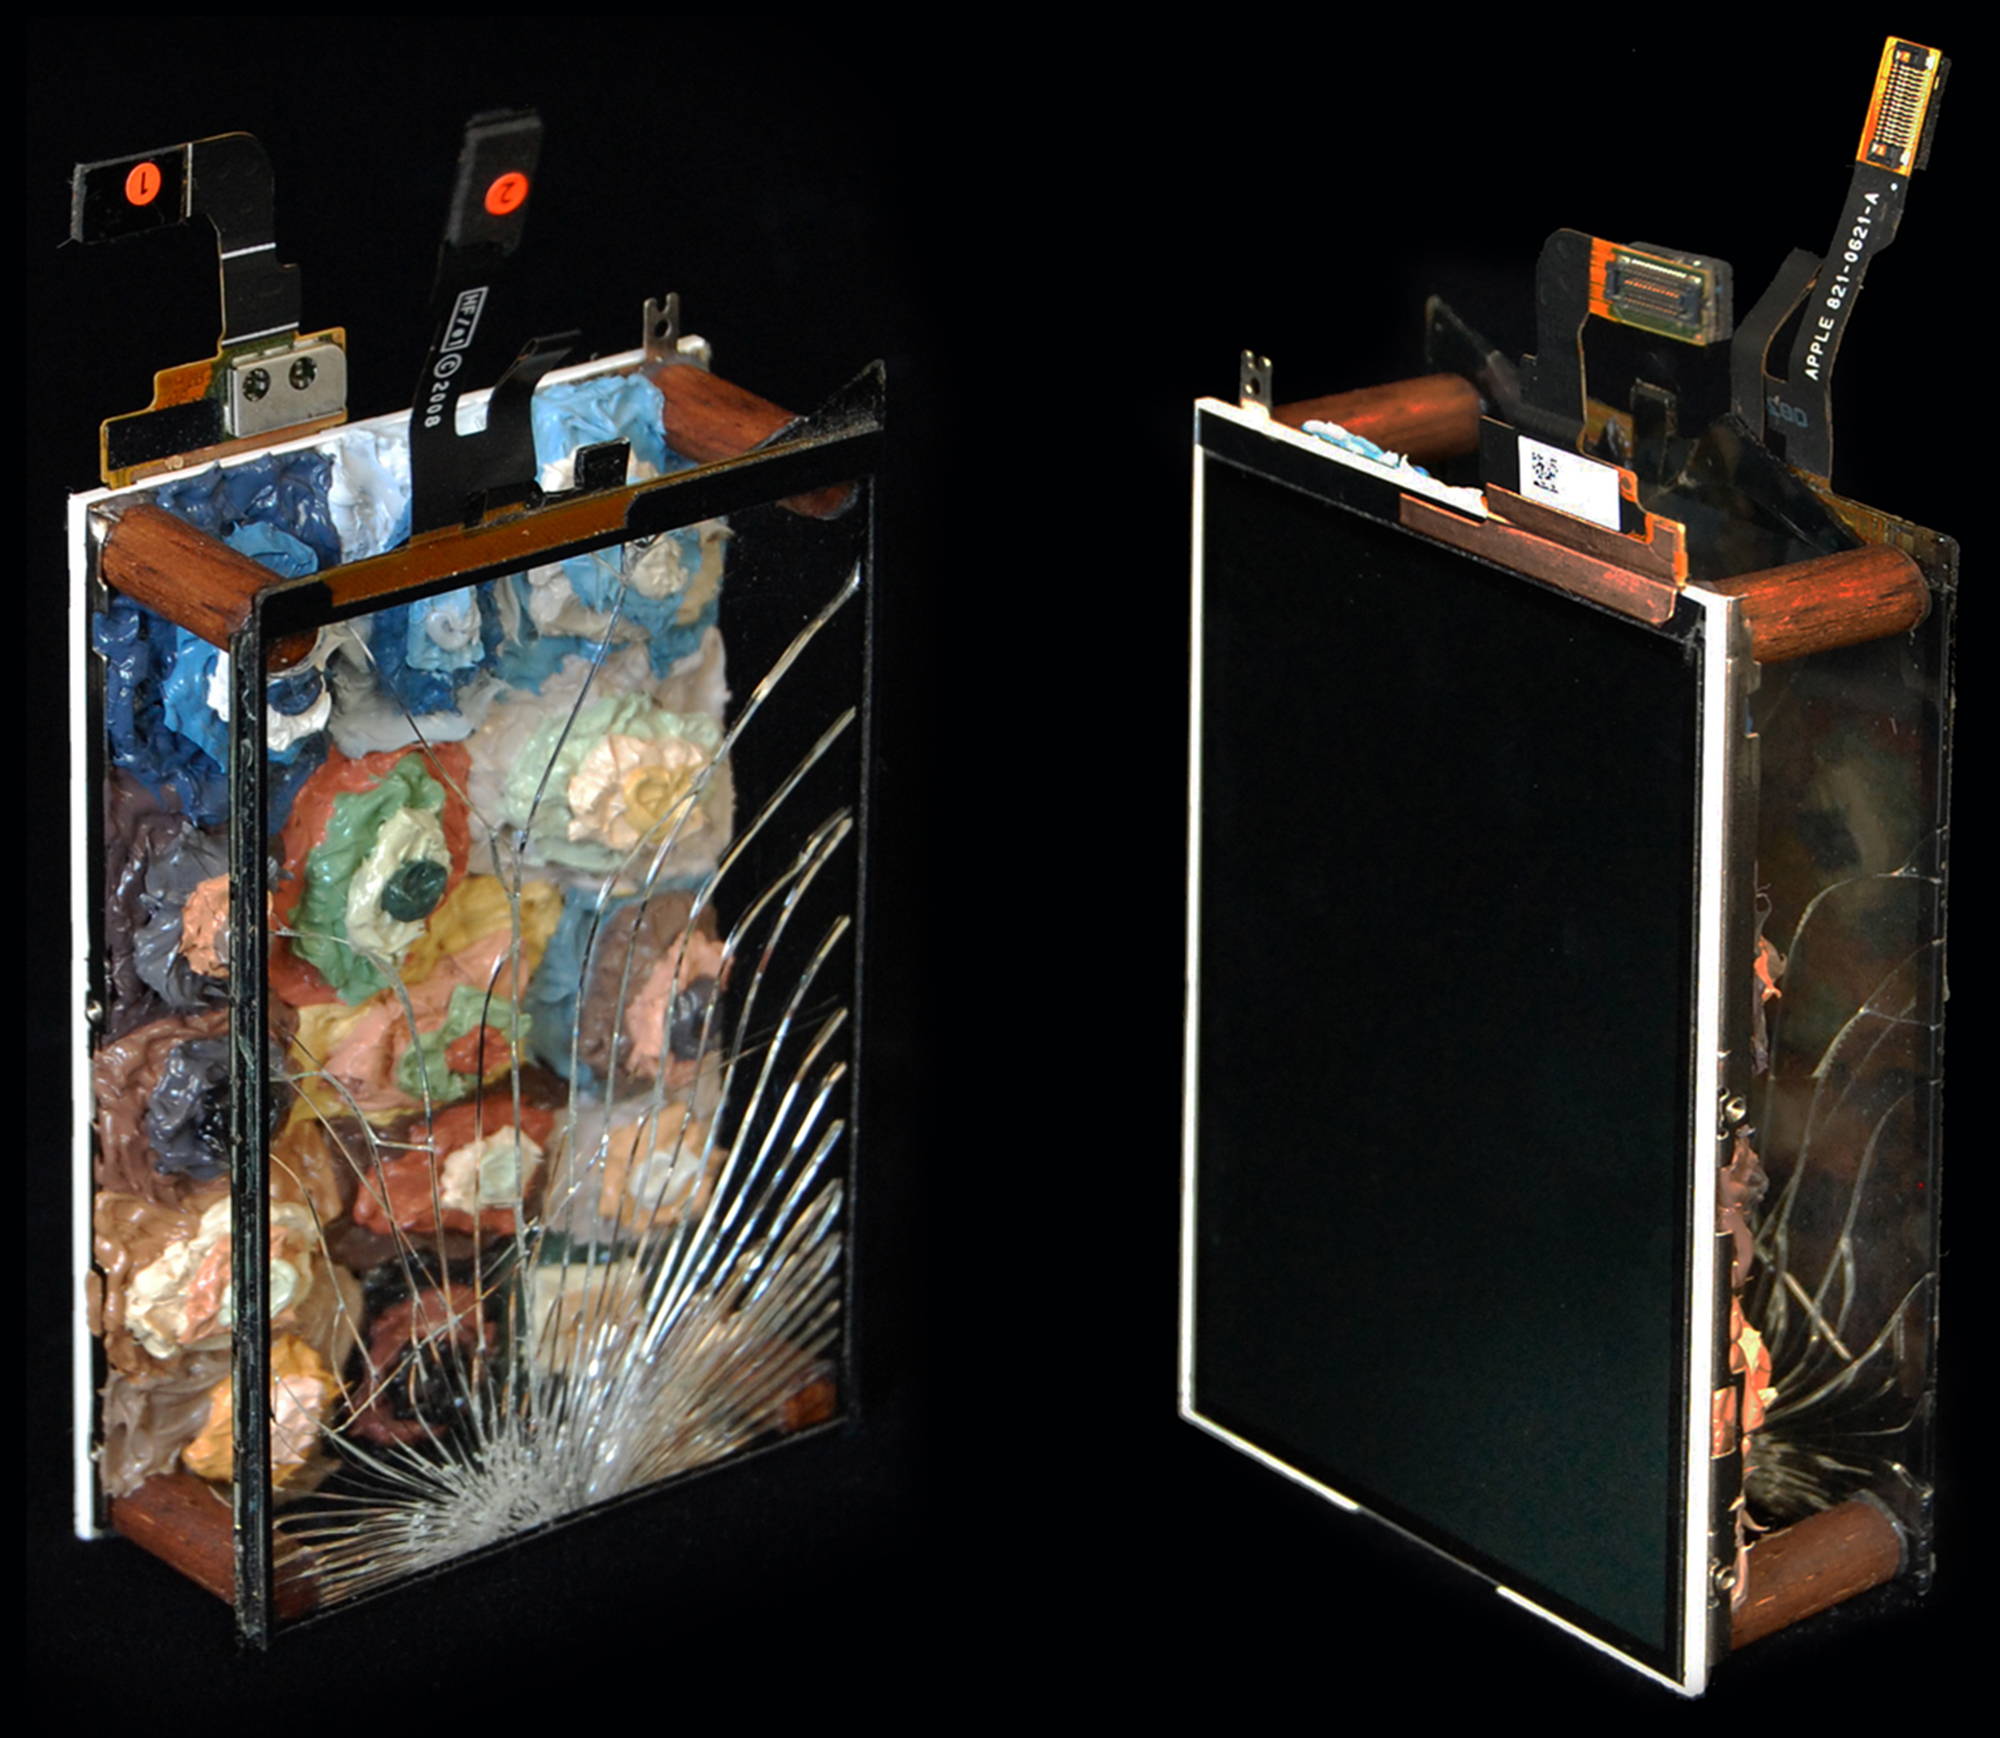 AP XVII (Portrait of Marcel Duchamp), 2011  |  4.5 x 2.25 x 1 inches  |  oil, wood, glass, lcd display and mixed media